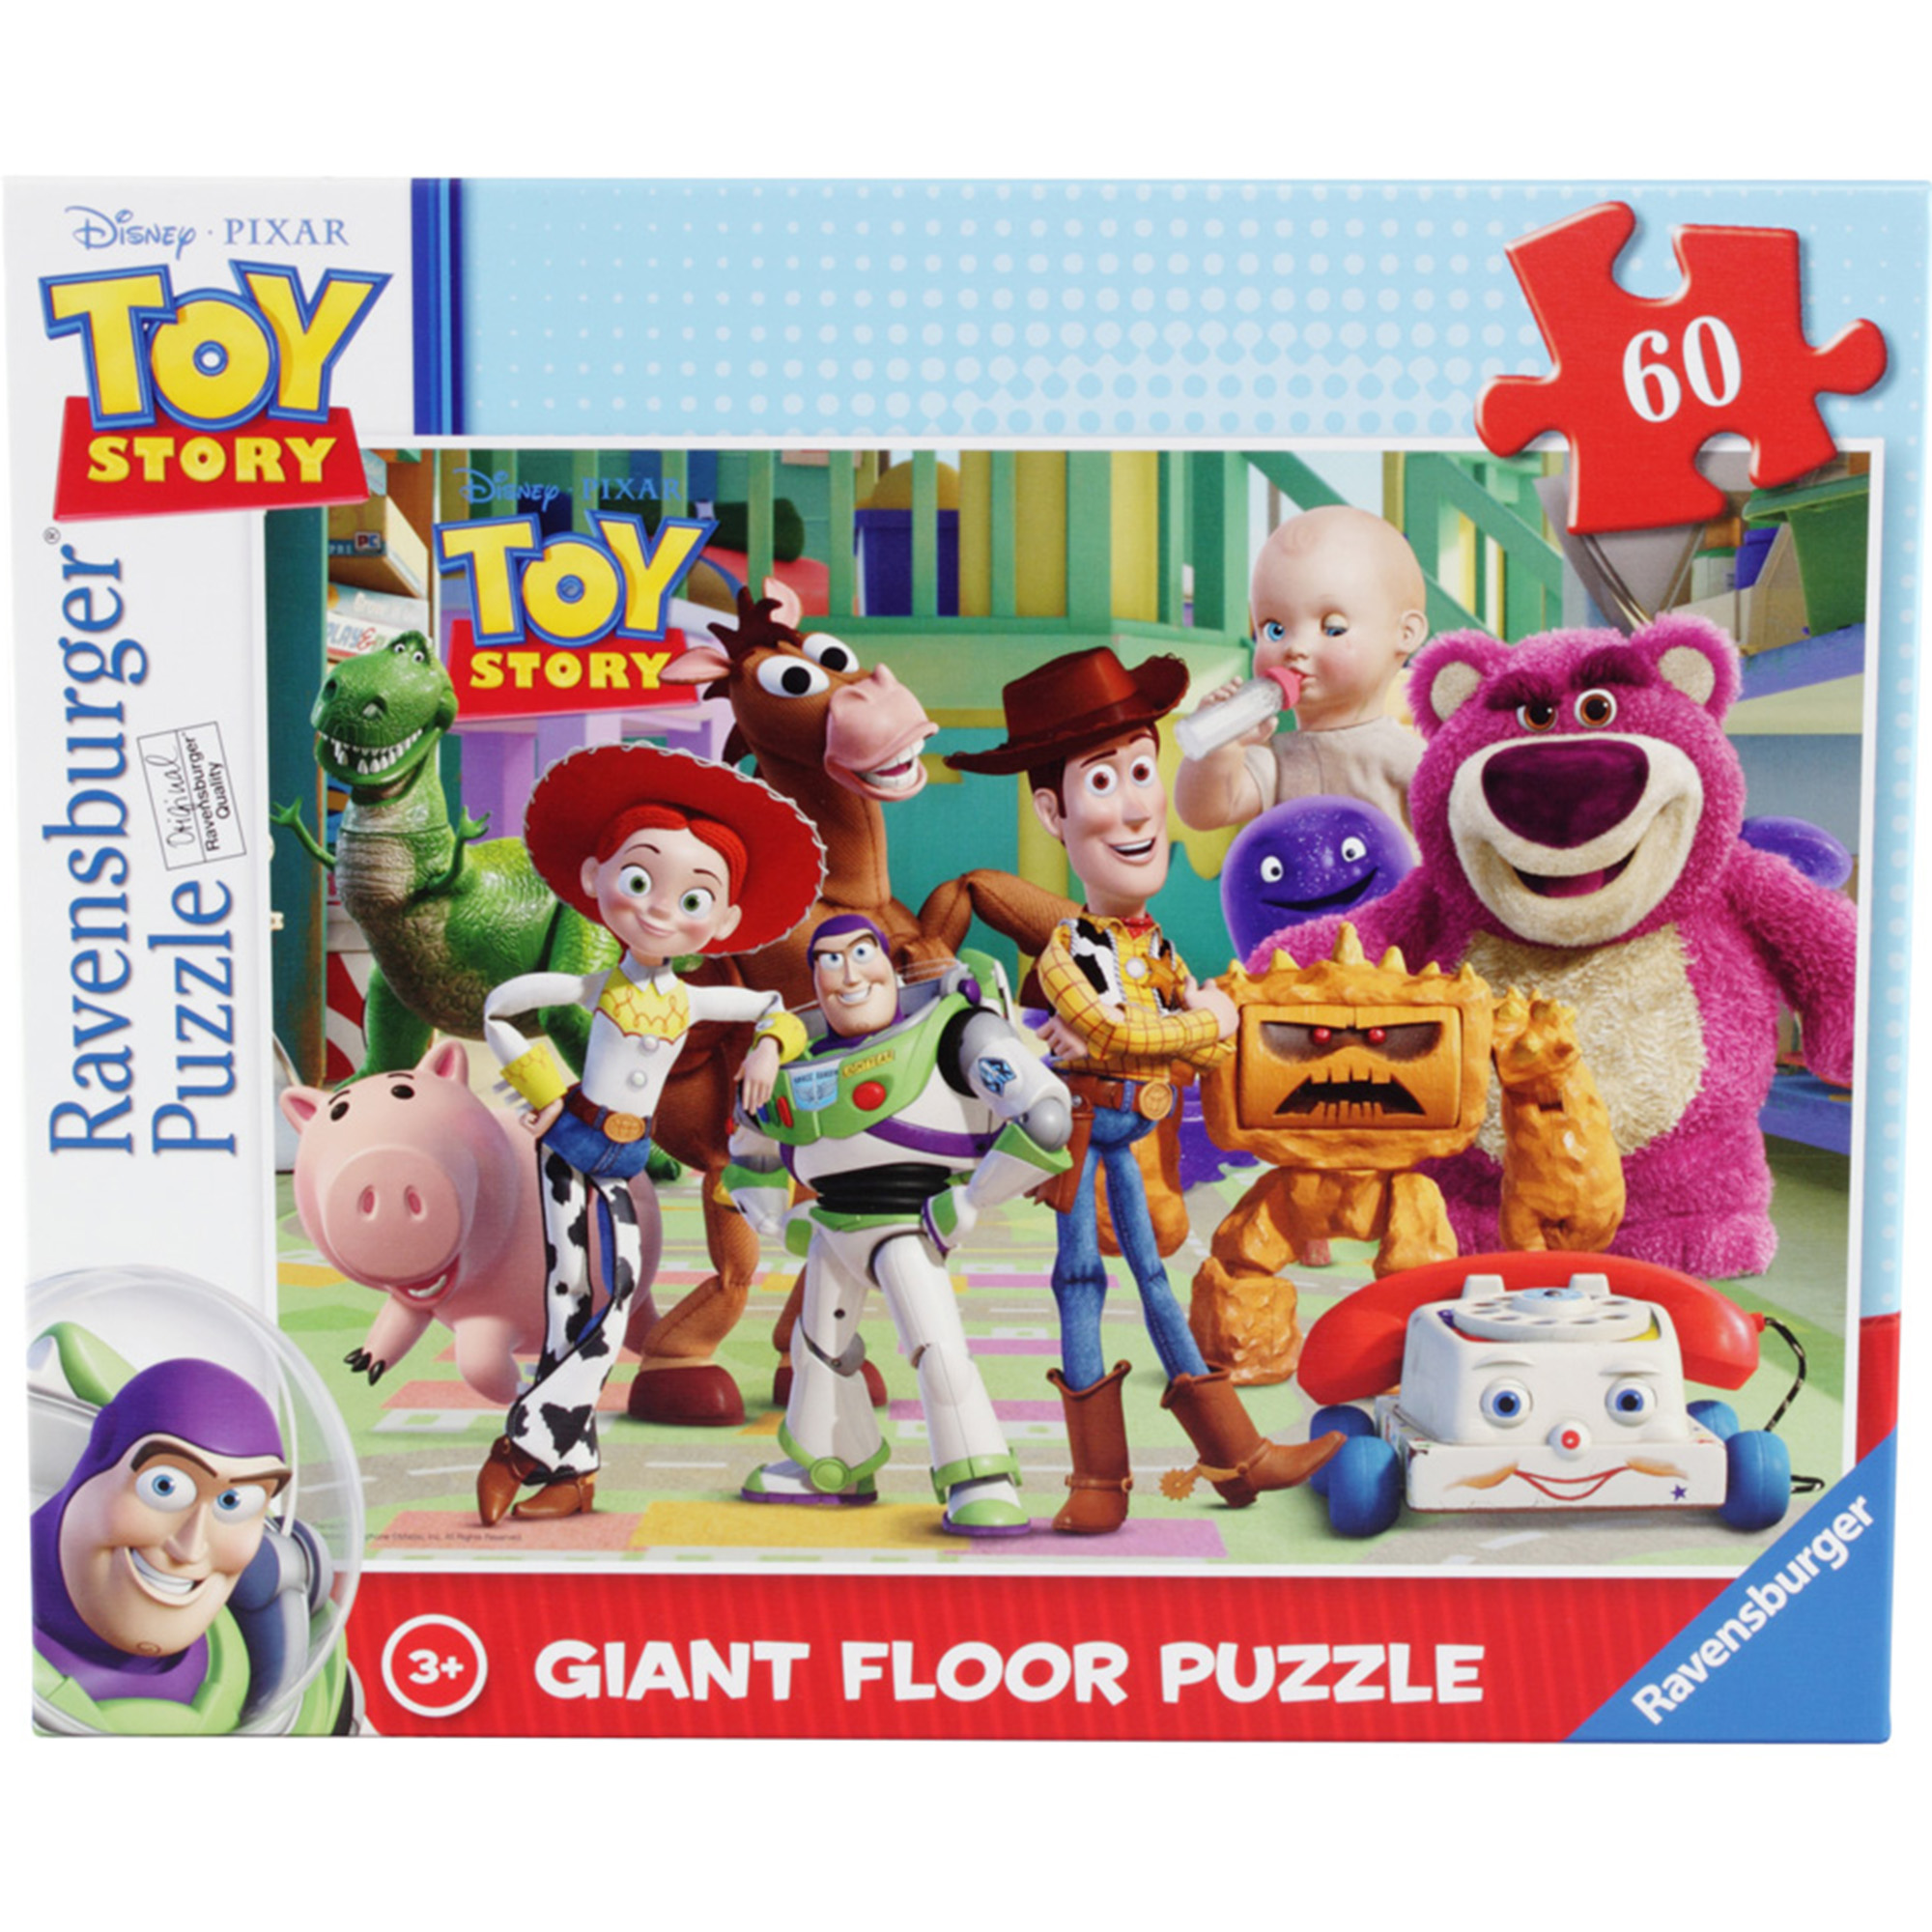 Ravensburger Disney Toy Story 60 Giant Floor Puzzle